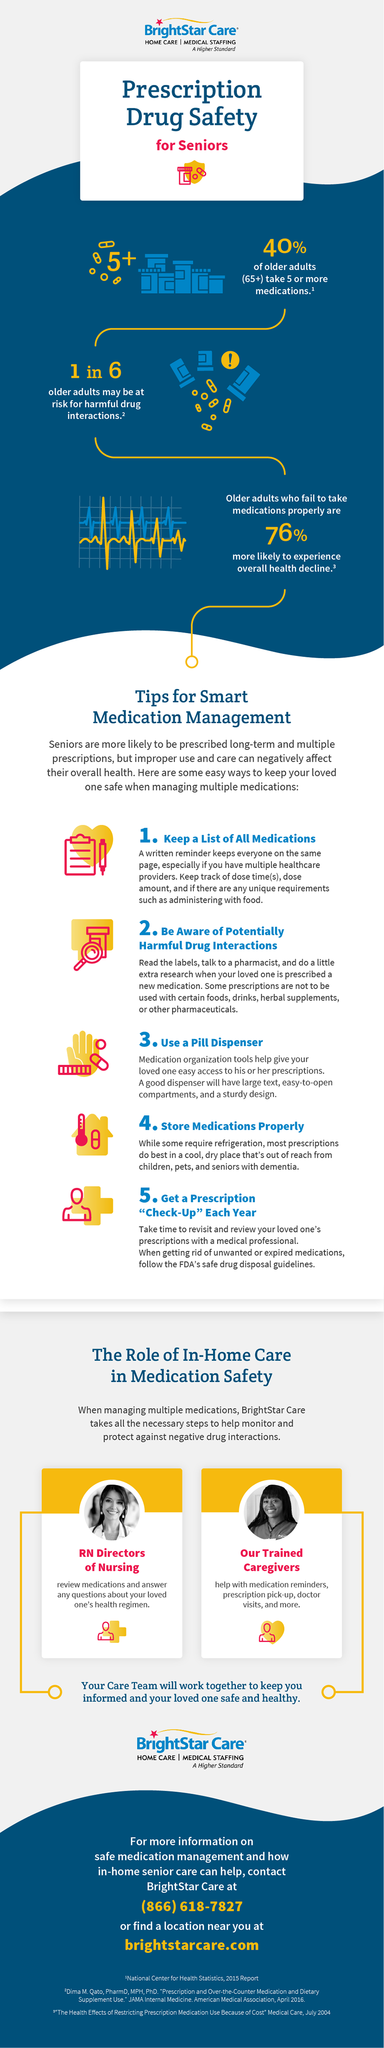 Prescription Drug Safety for Seniors